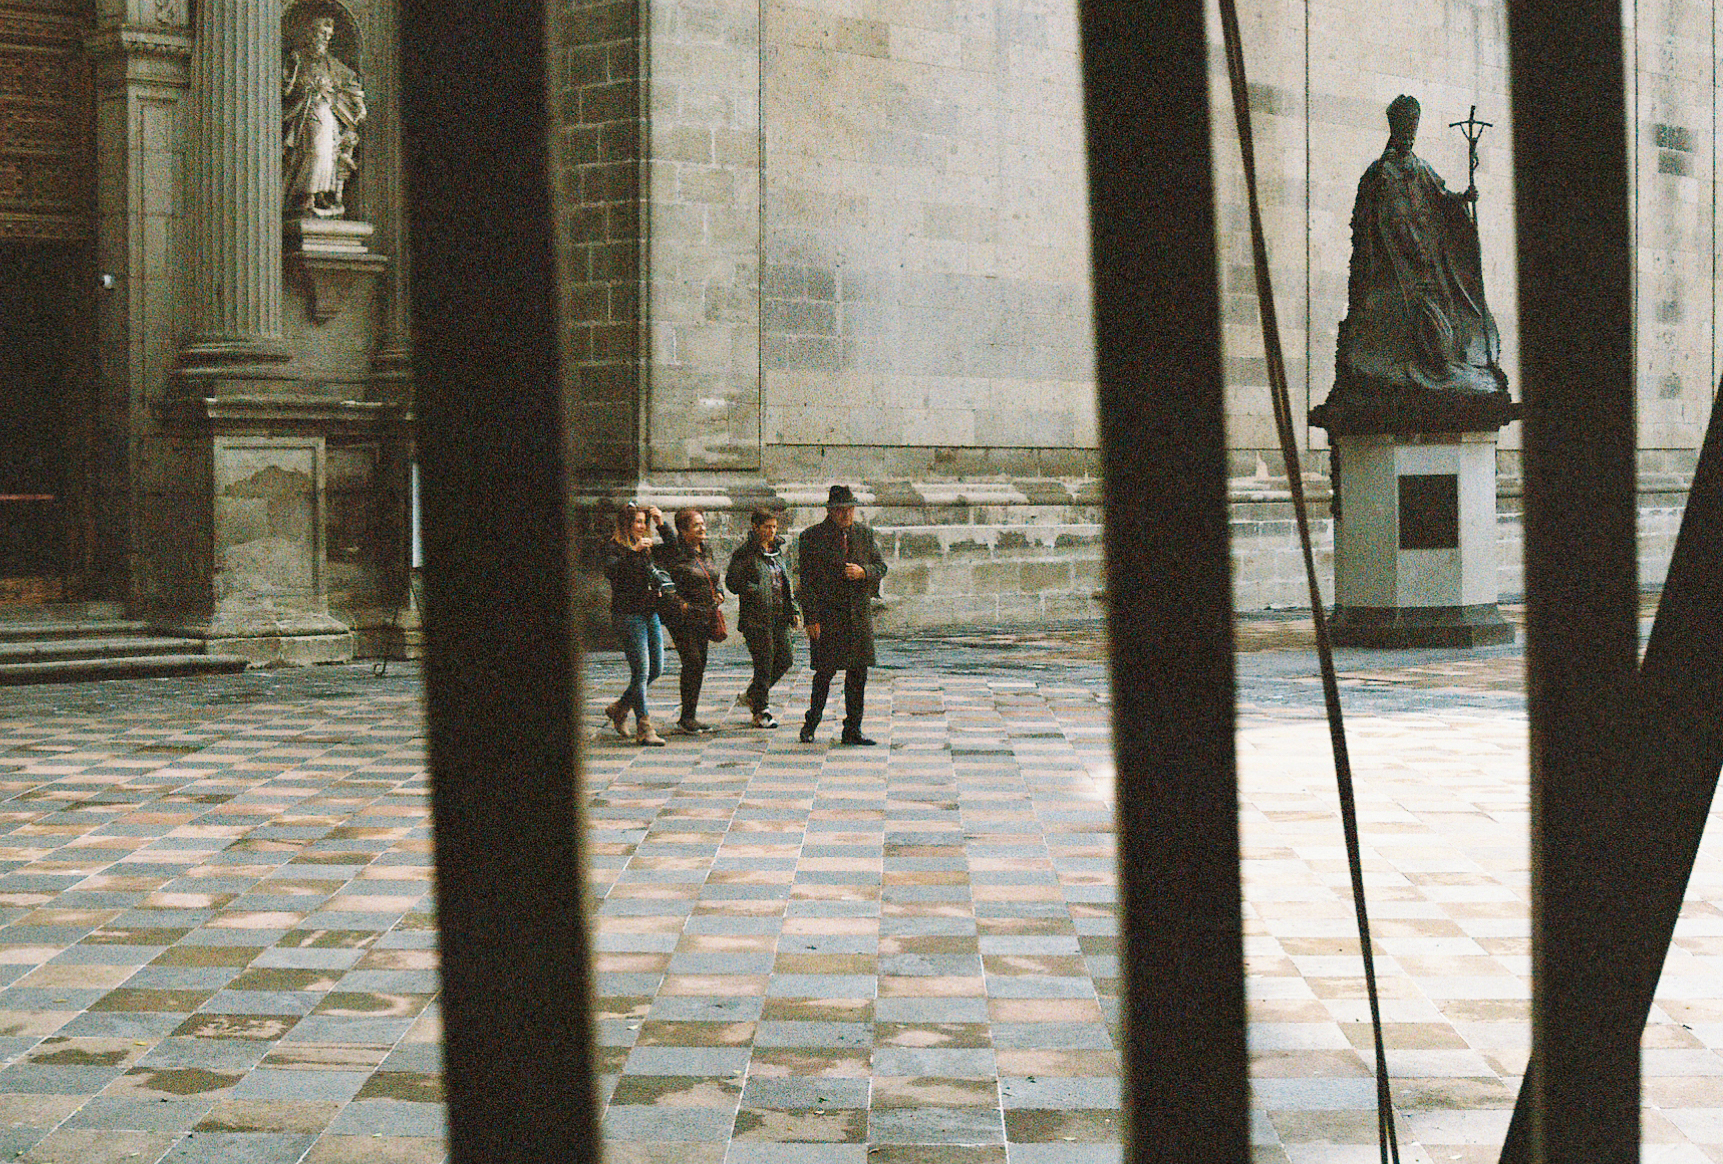 People leaving Mexico City Metropolitan Cathedral shot through the railings by Nick Barry 35mm film.